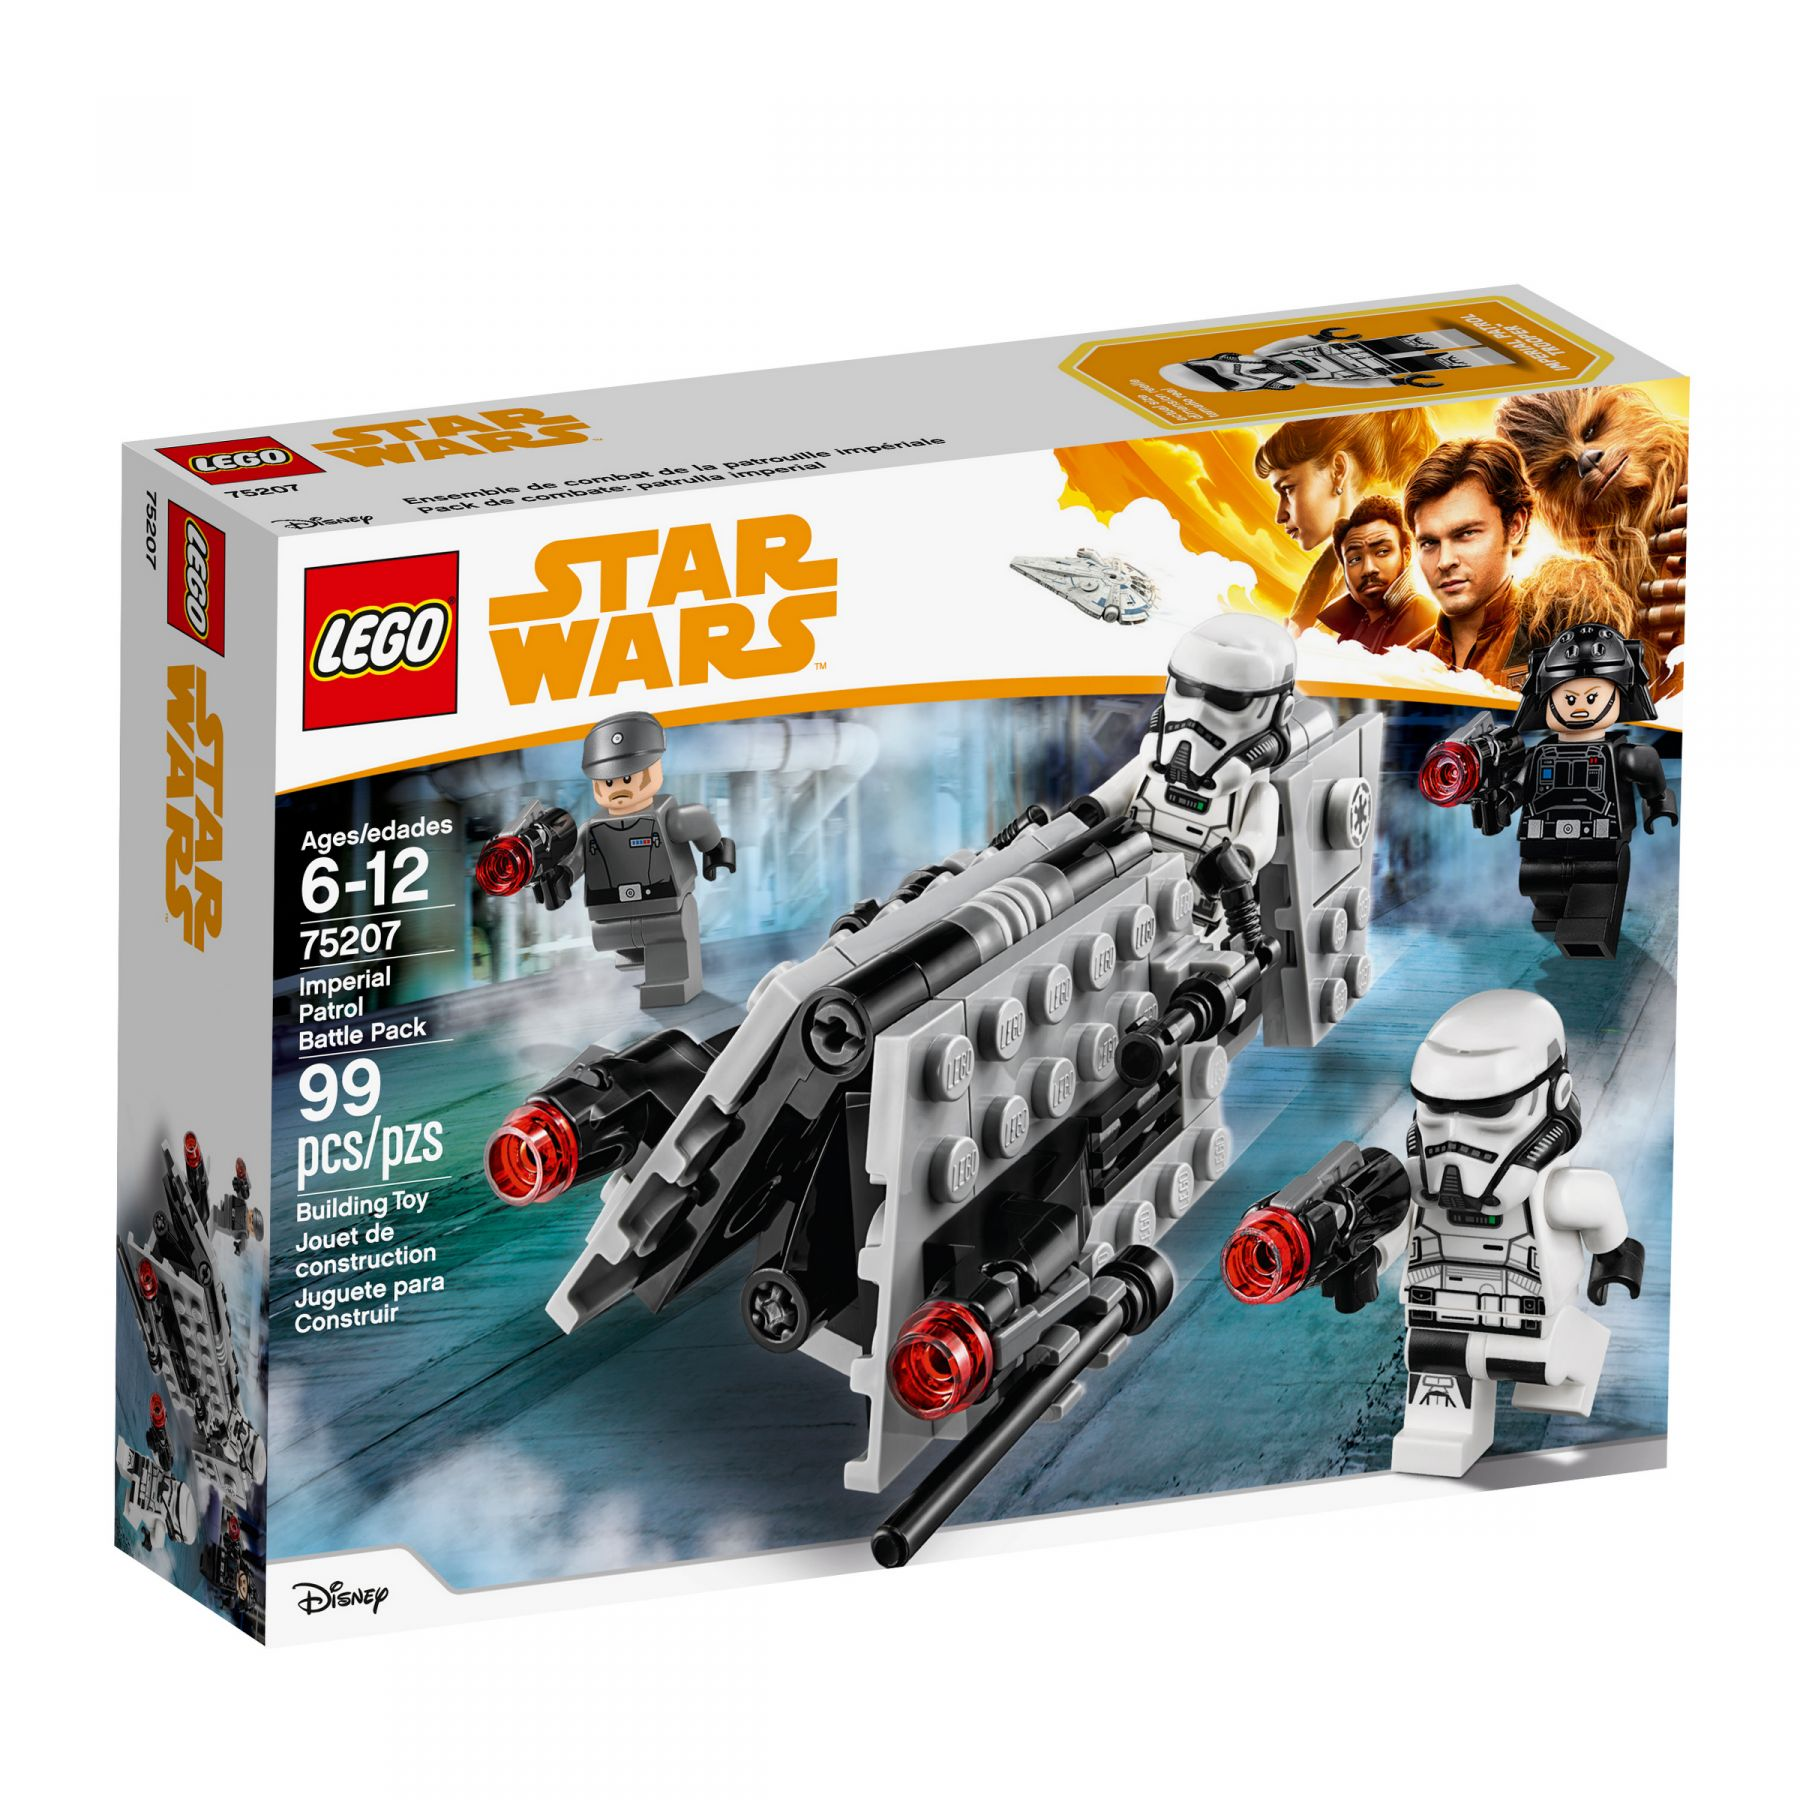 LEGO Star Wars 75207 Imperial Patrol Battle Pack LEGO_75207_alt1.jpg